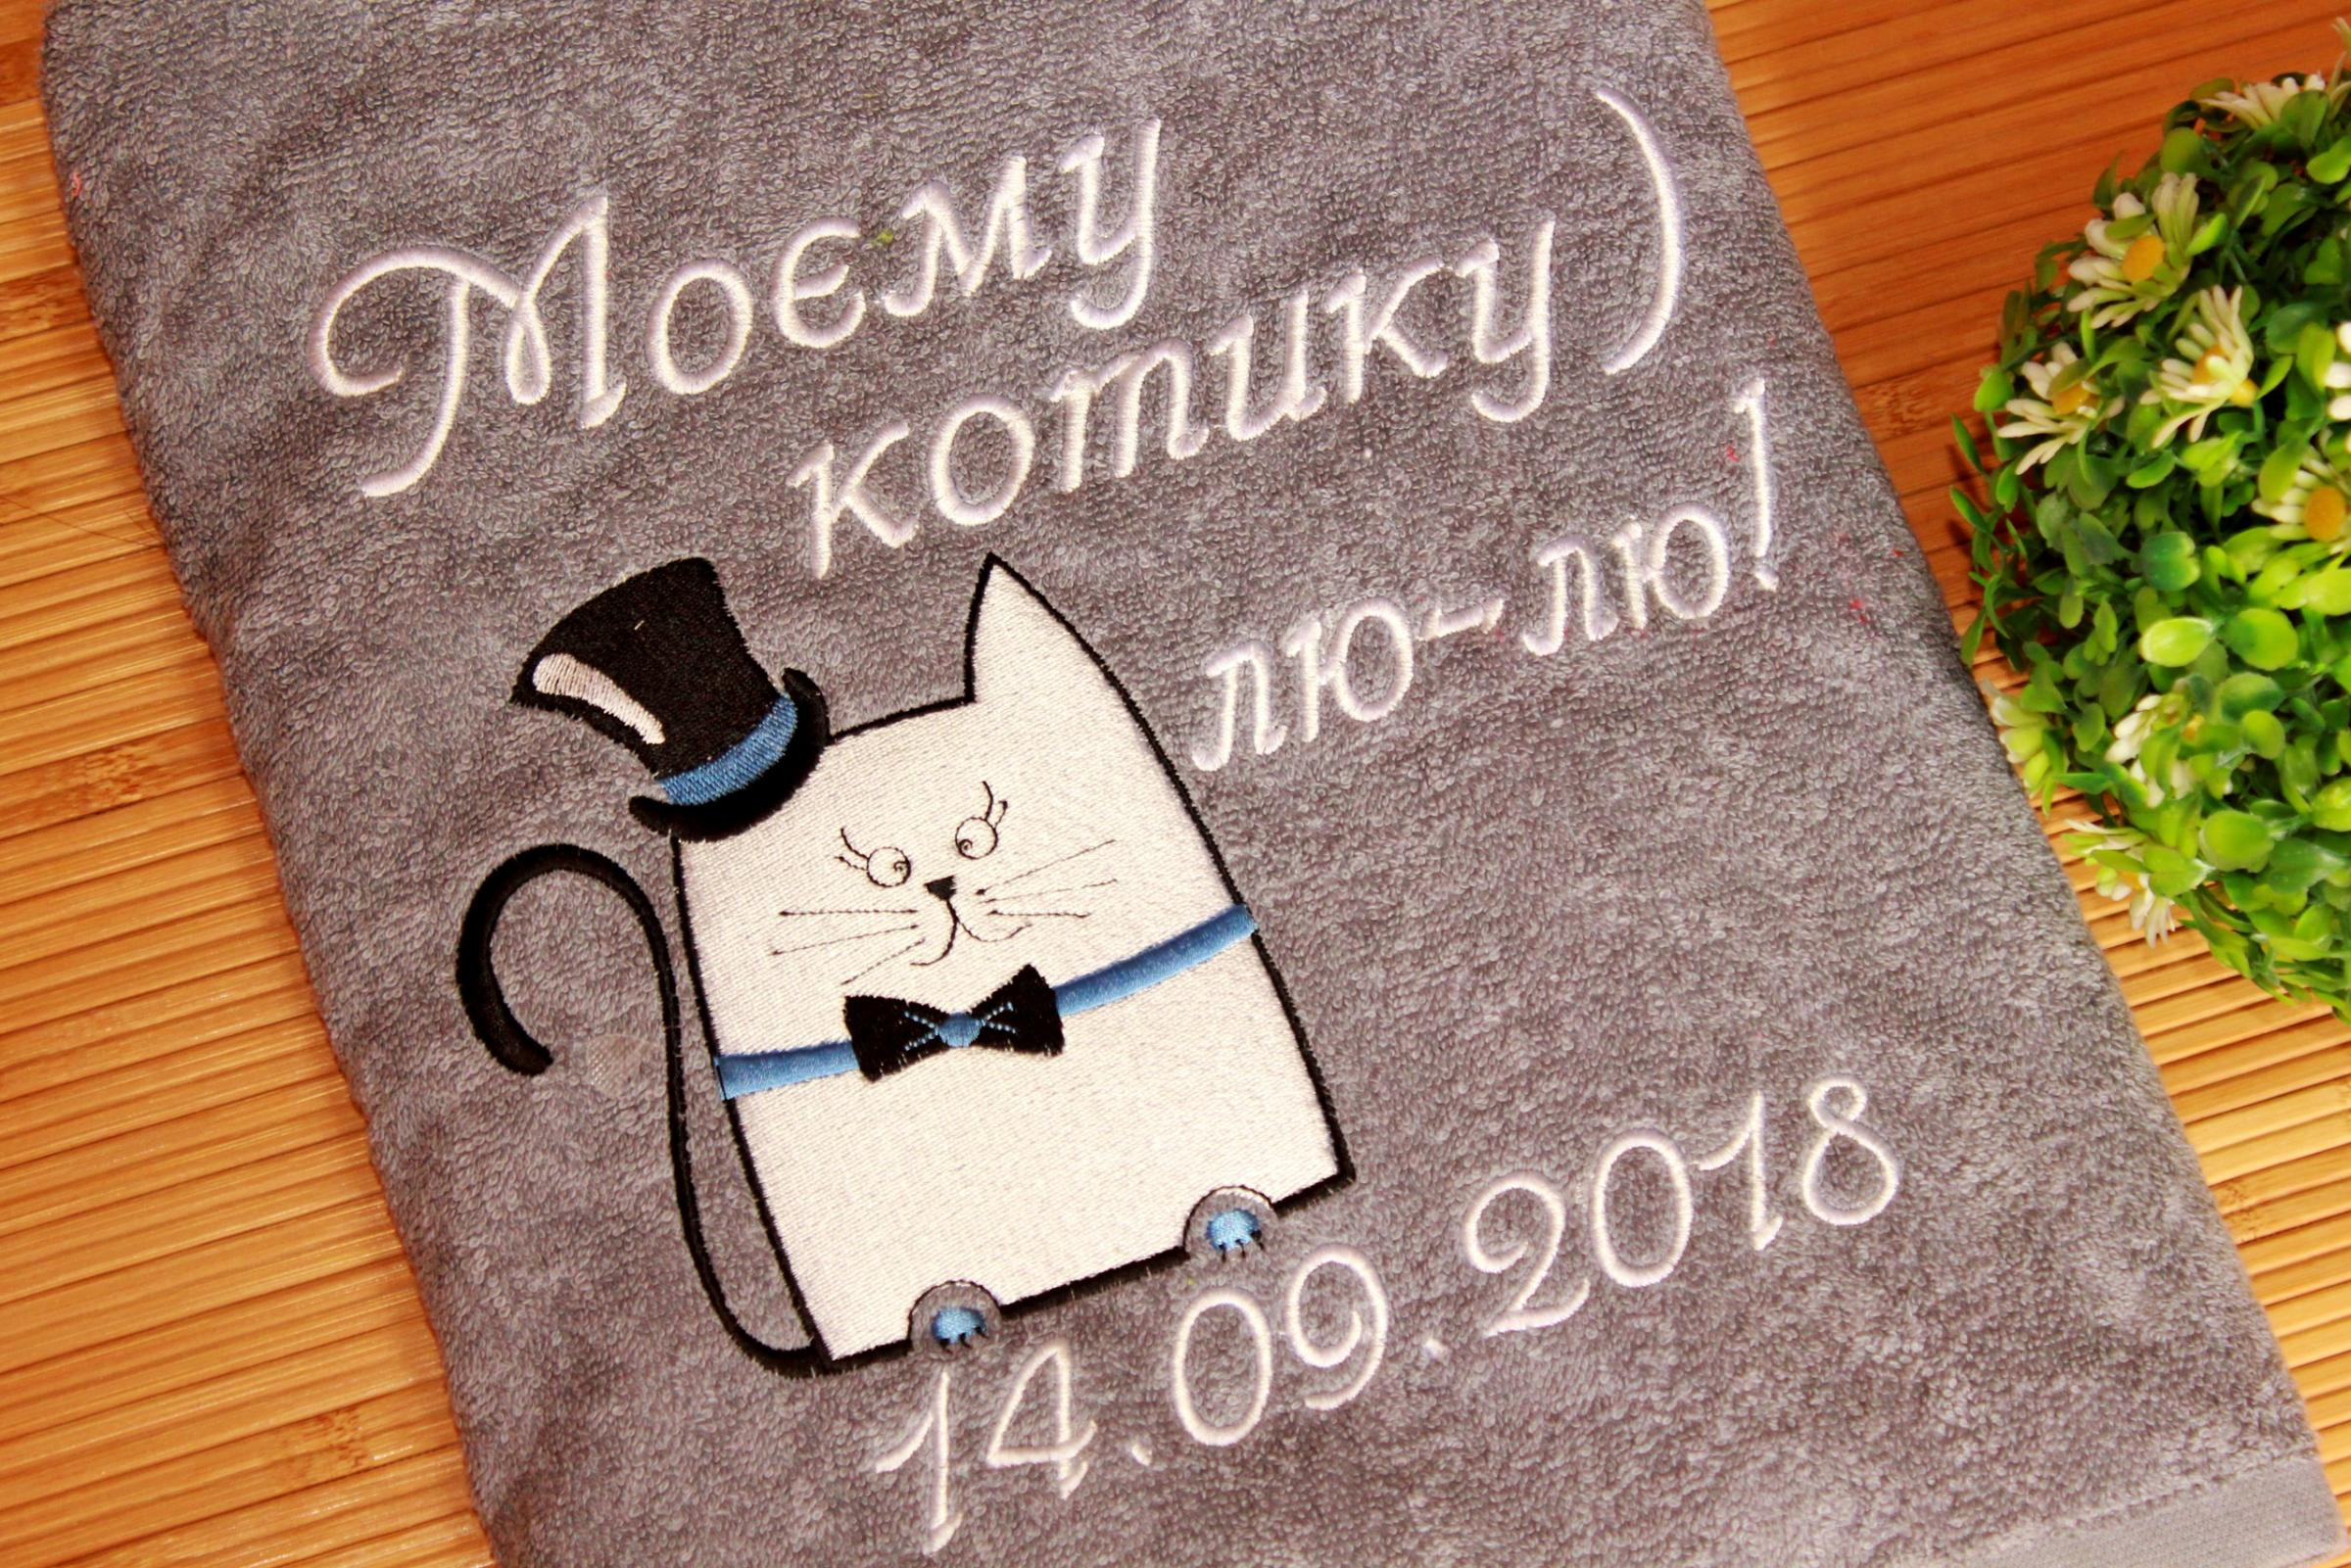 Embroidered towel with Square cat design